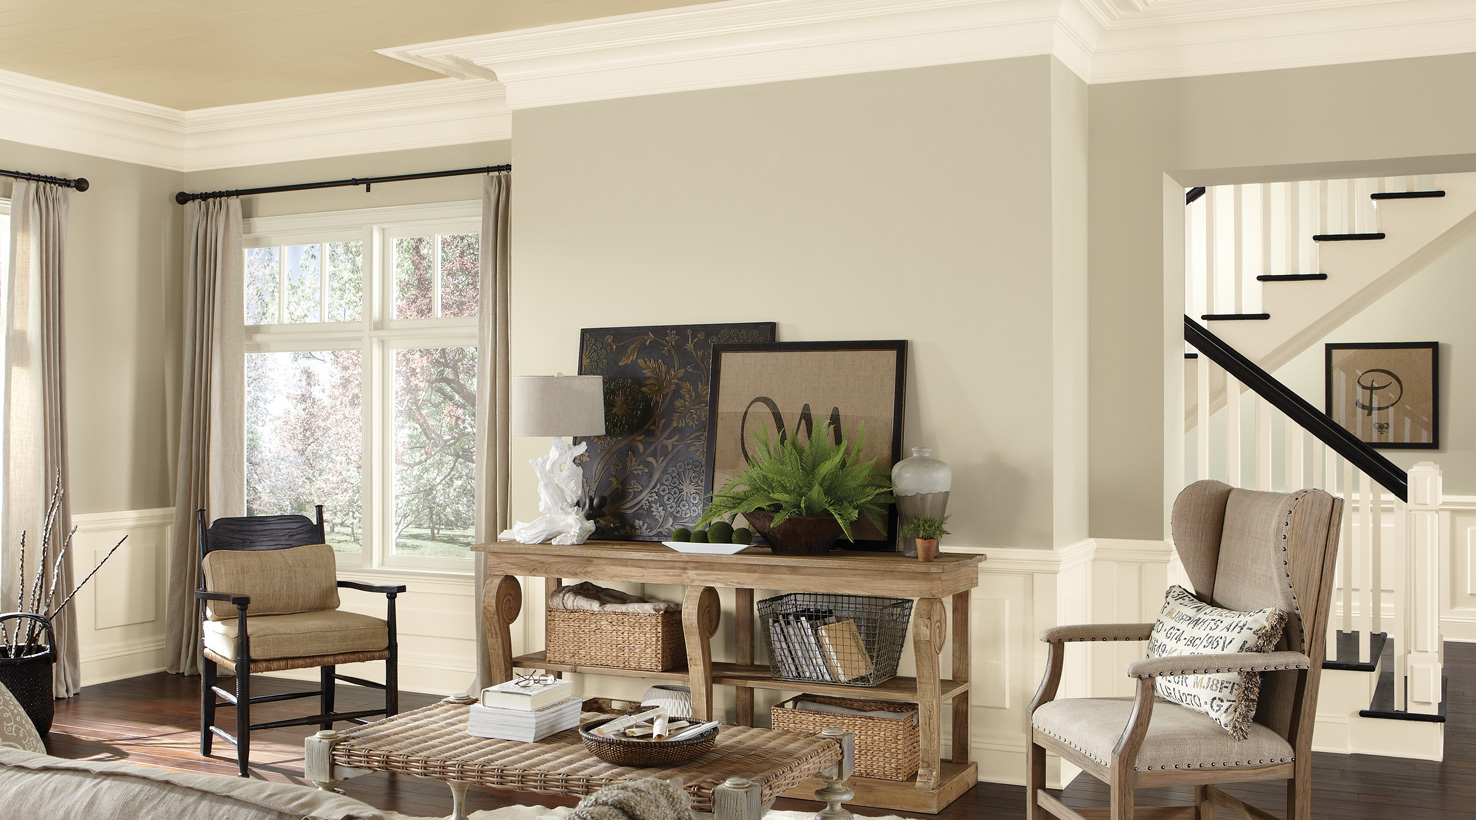 New paint colors for living room ... living room color inspiration. 1 ... baldyzw